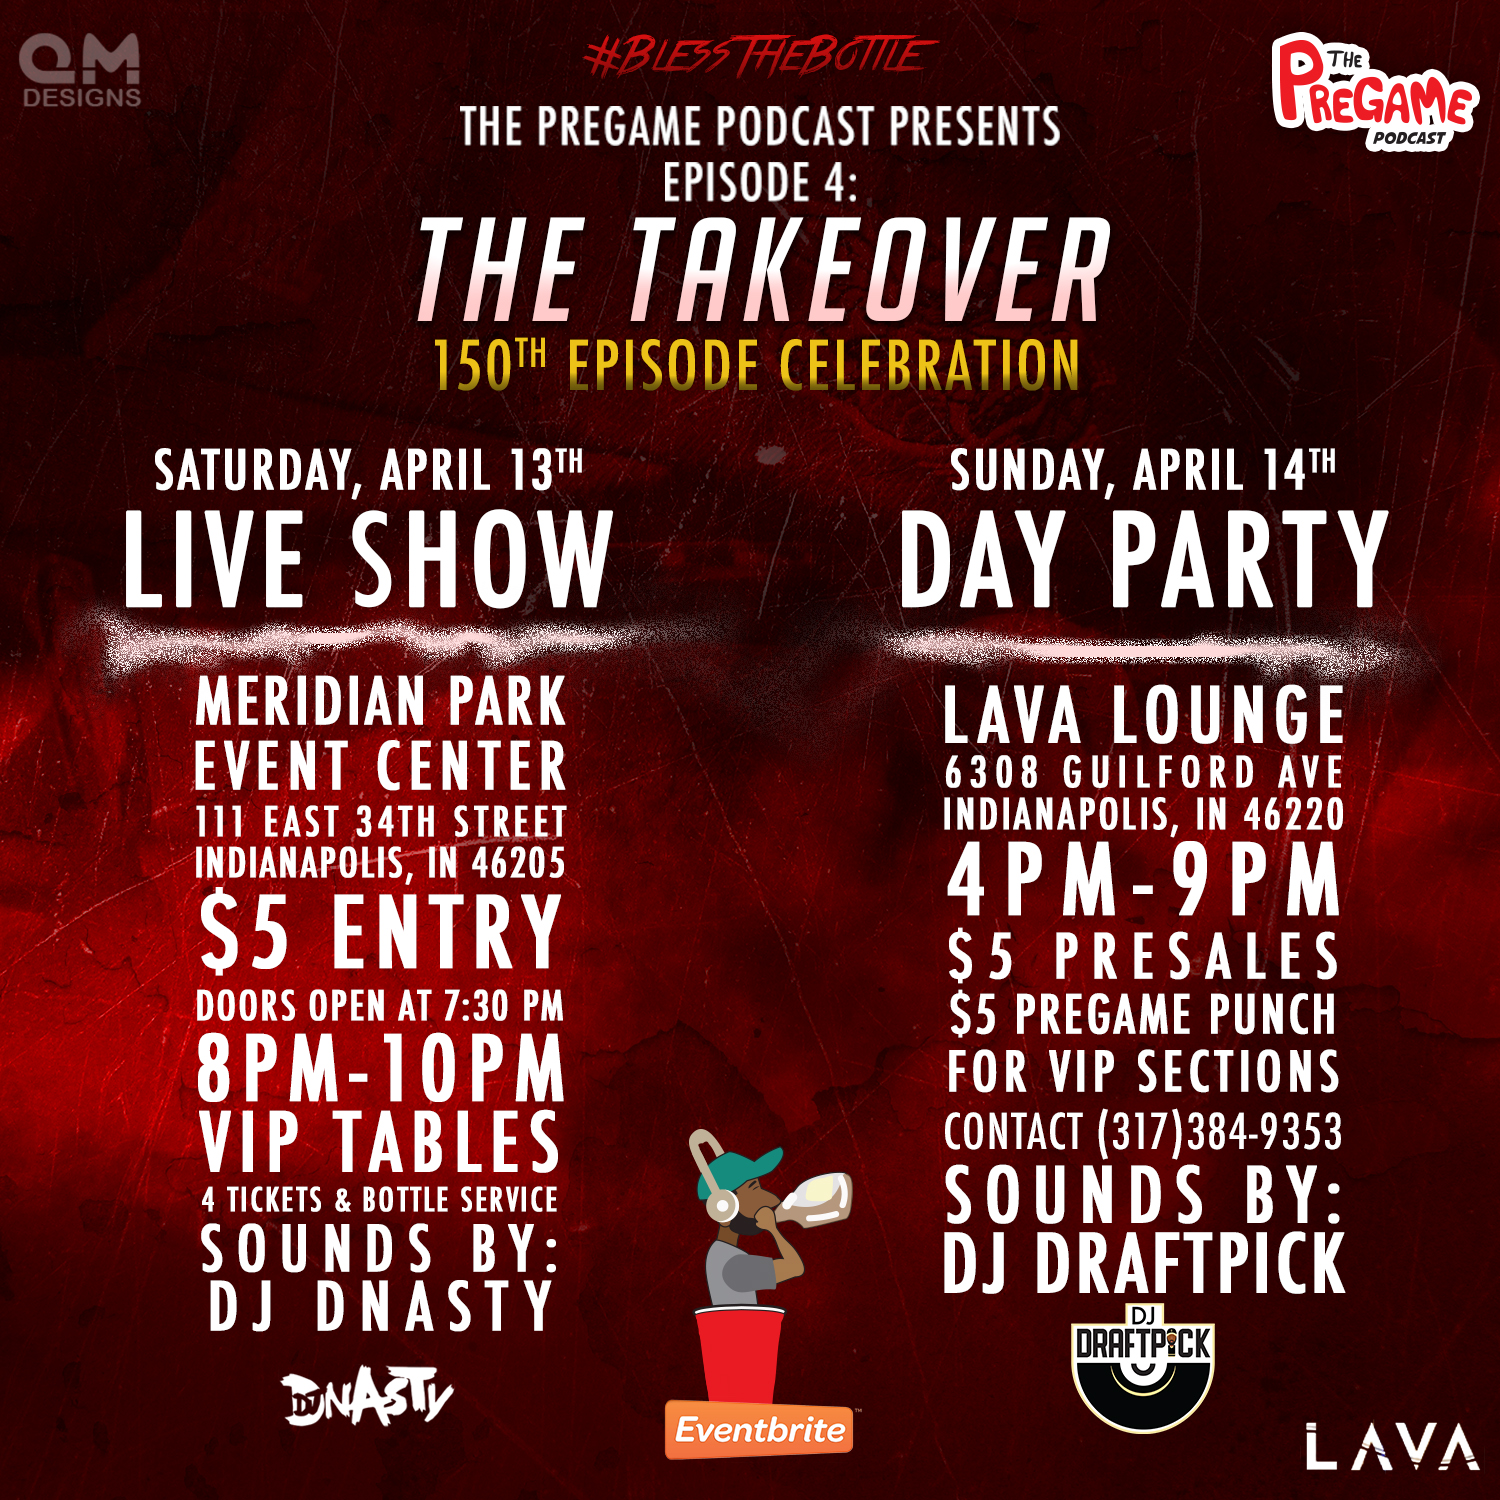 event flyer for the Pregame's Indy Takeover